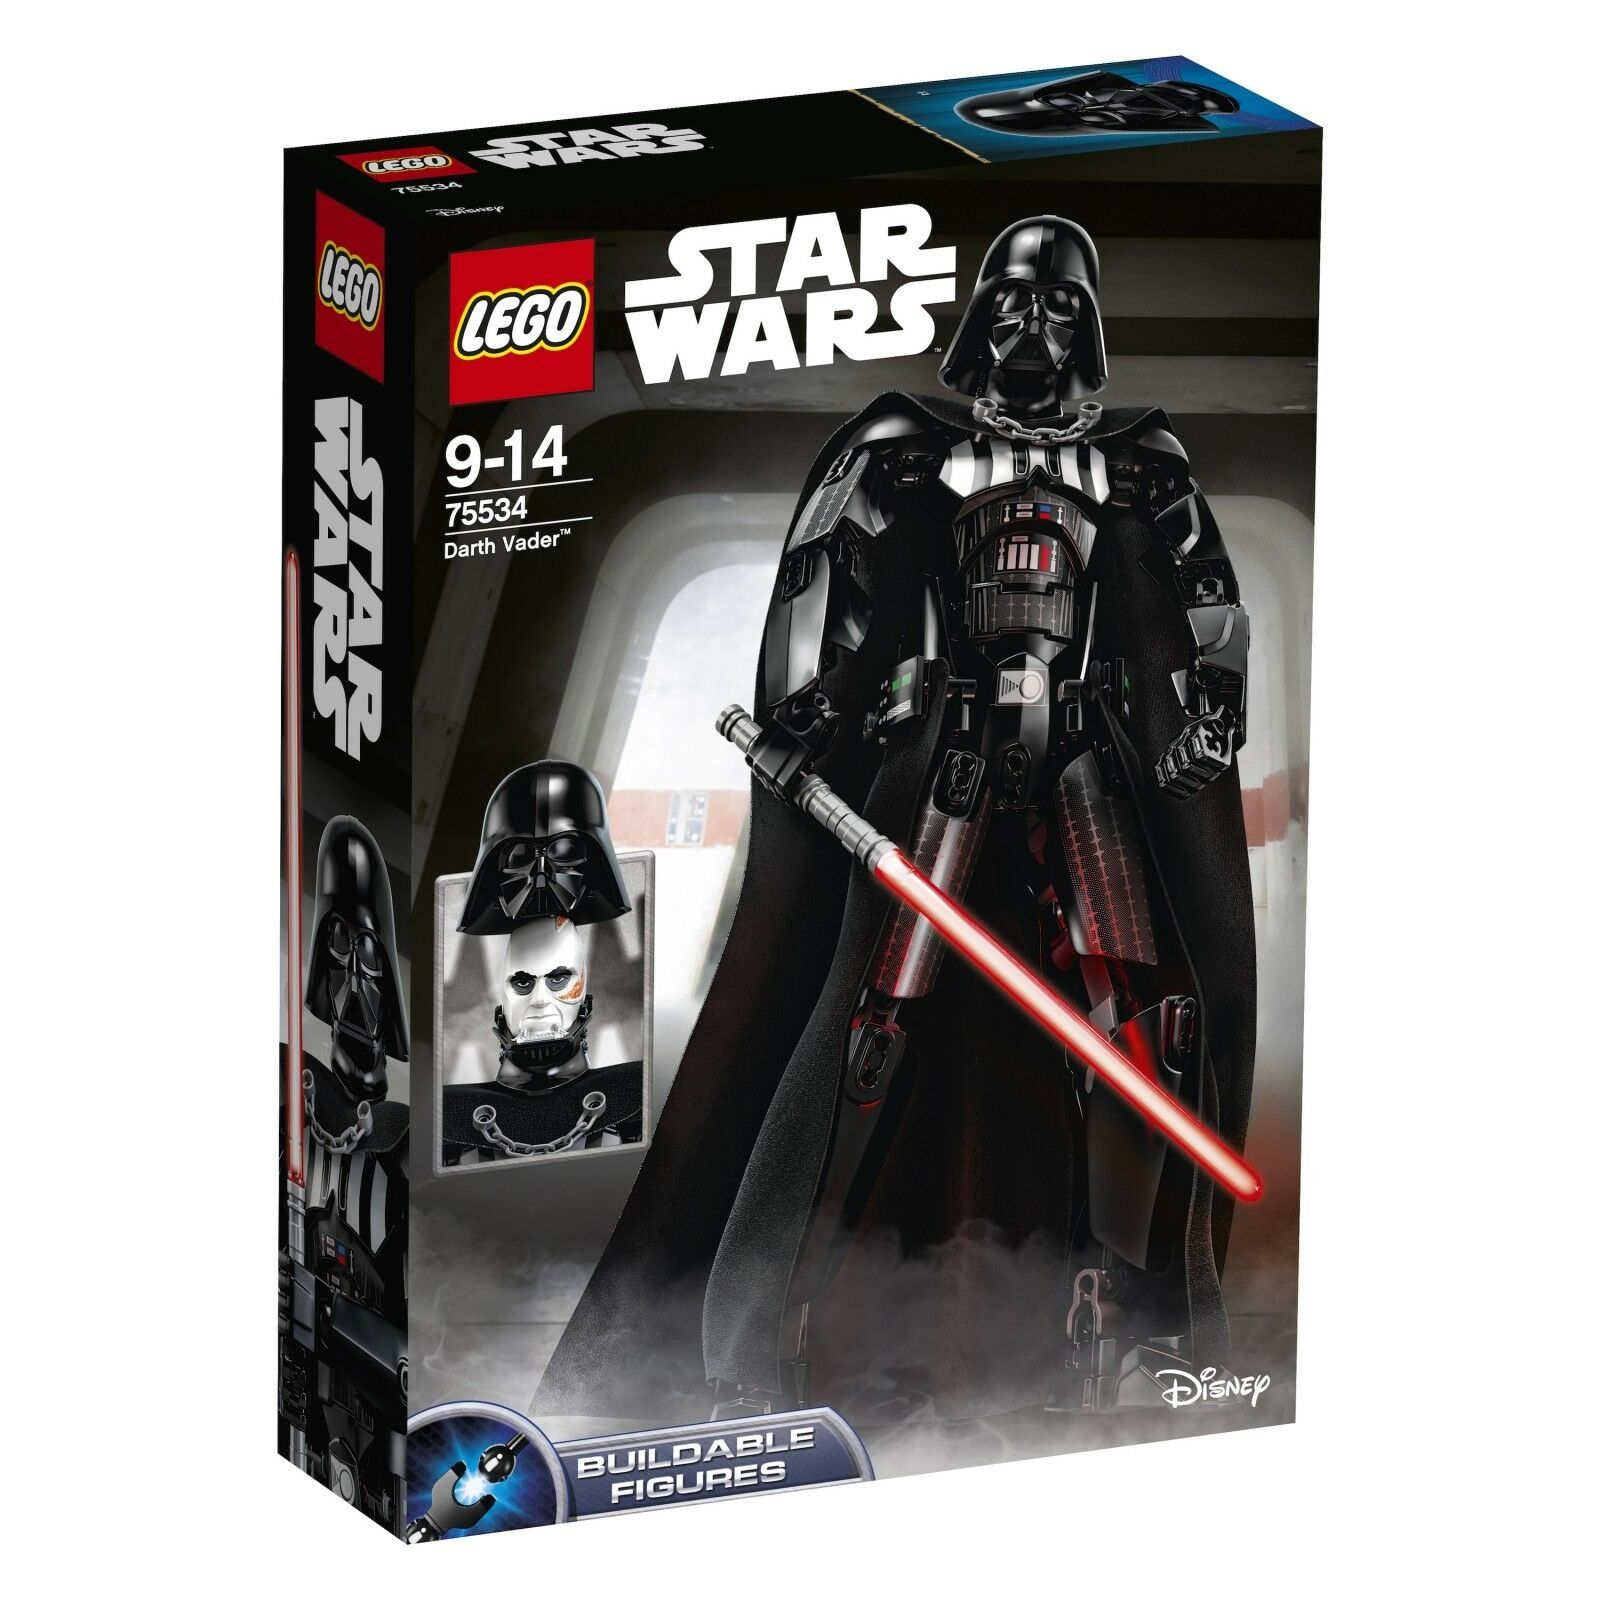 LEGO ® Star Wars ™ Constraction 75534 Darth Vader ™ NUOVO OVP _ NEW MISB NRFB